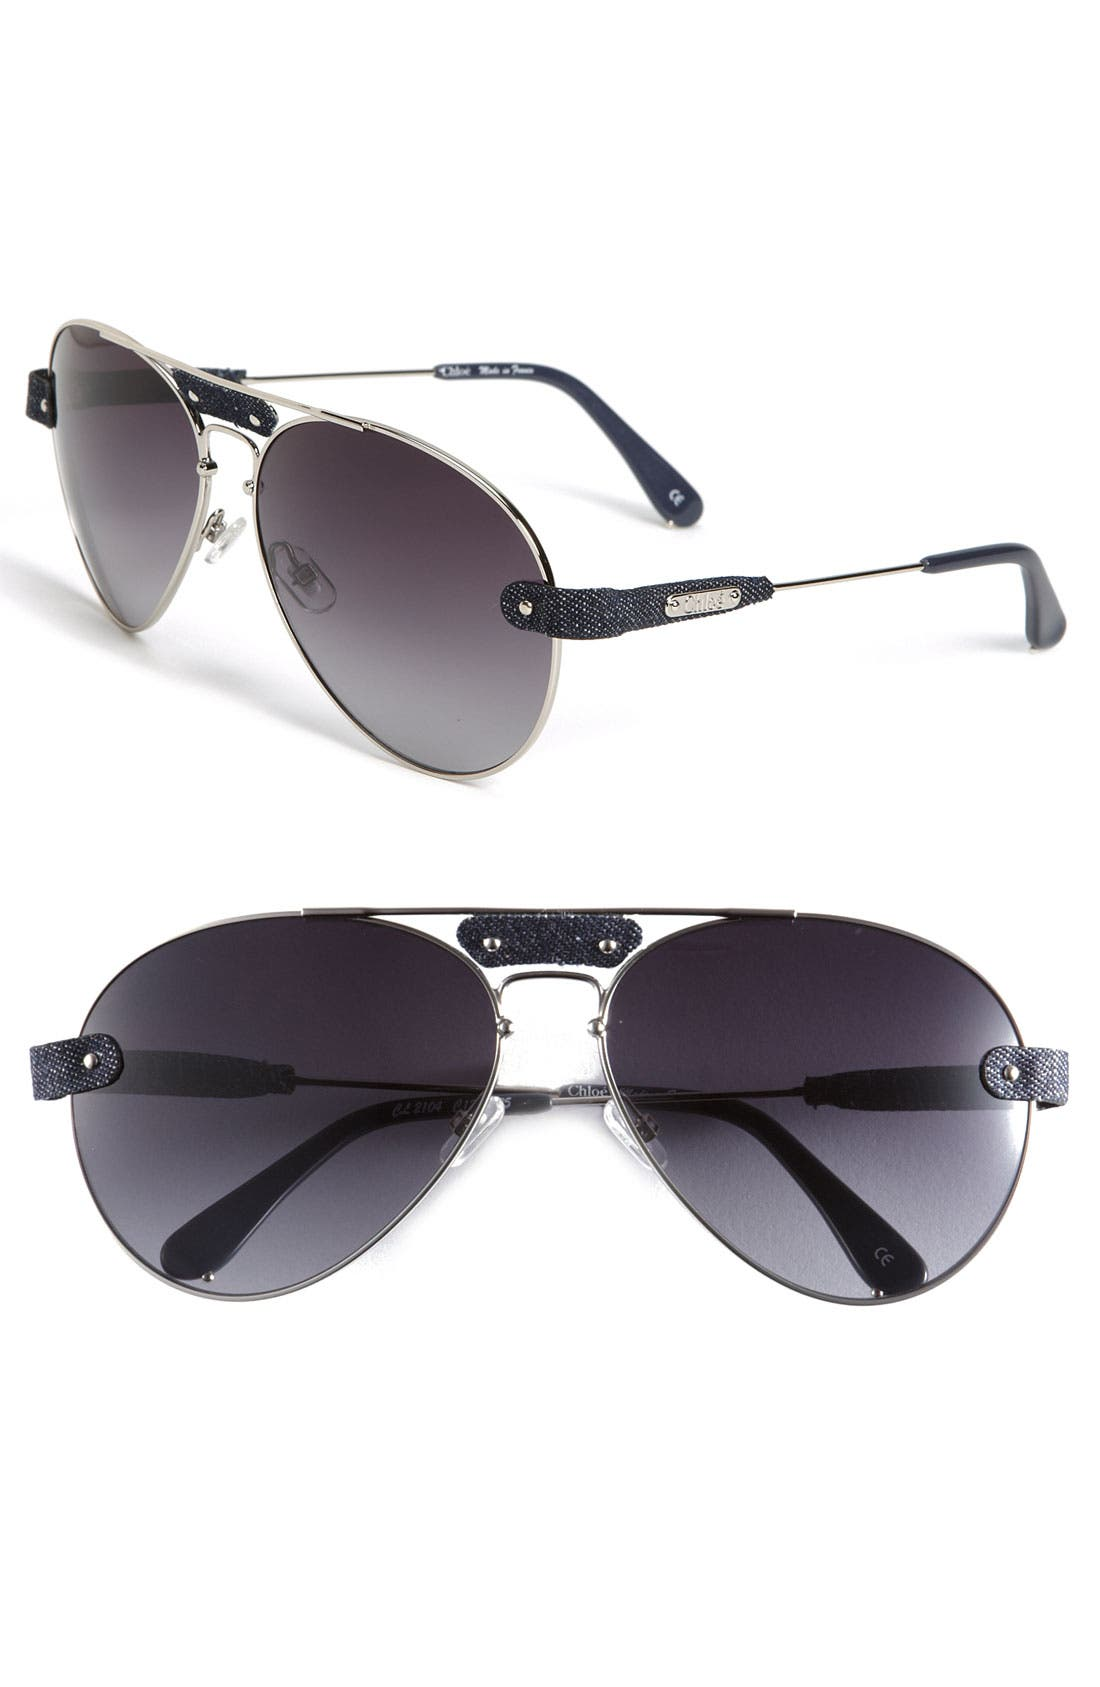 Main Image - Chloé Aviator Sunglasses with Leather Trim